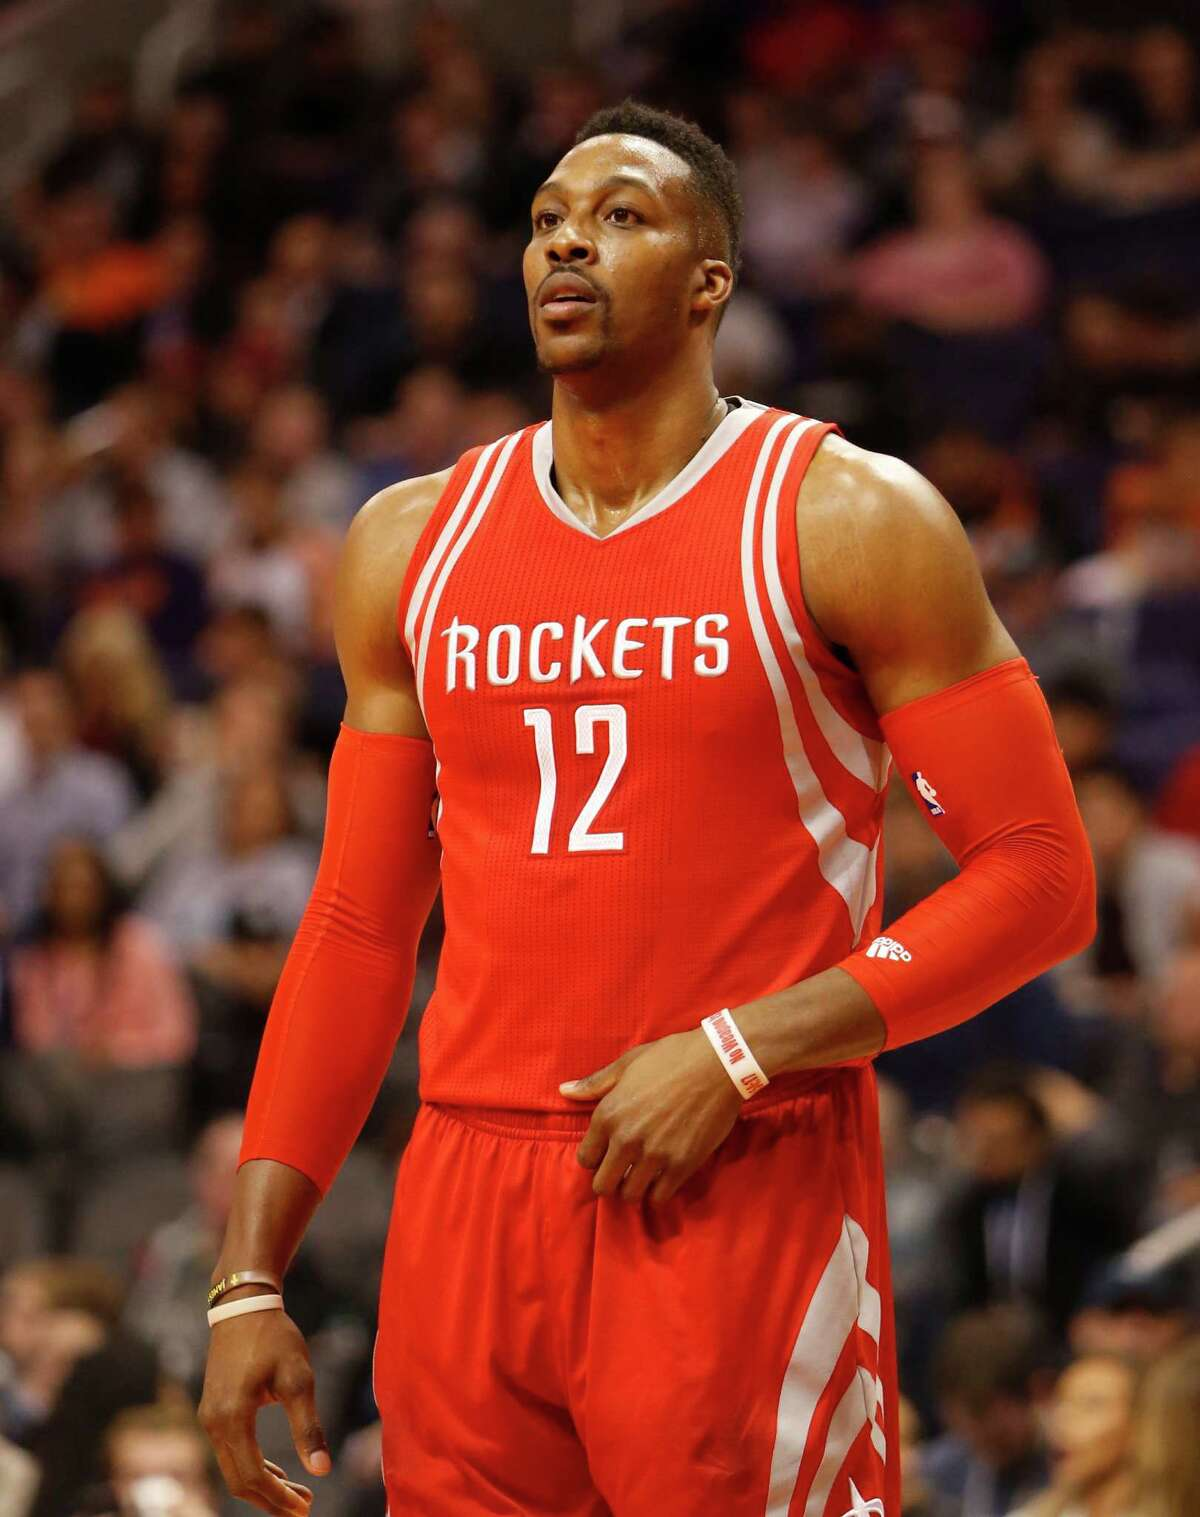 The Rockets listened to offers for Dwight Howard at the deadline, but no deal was struck.